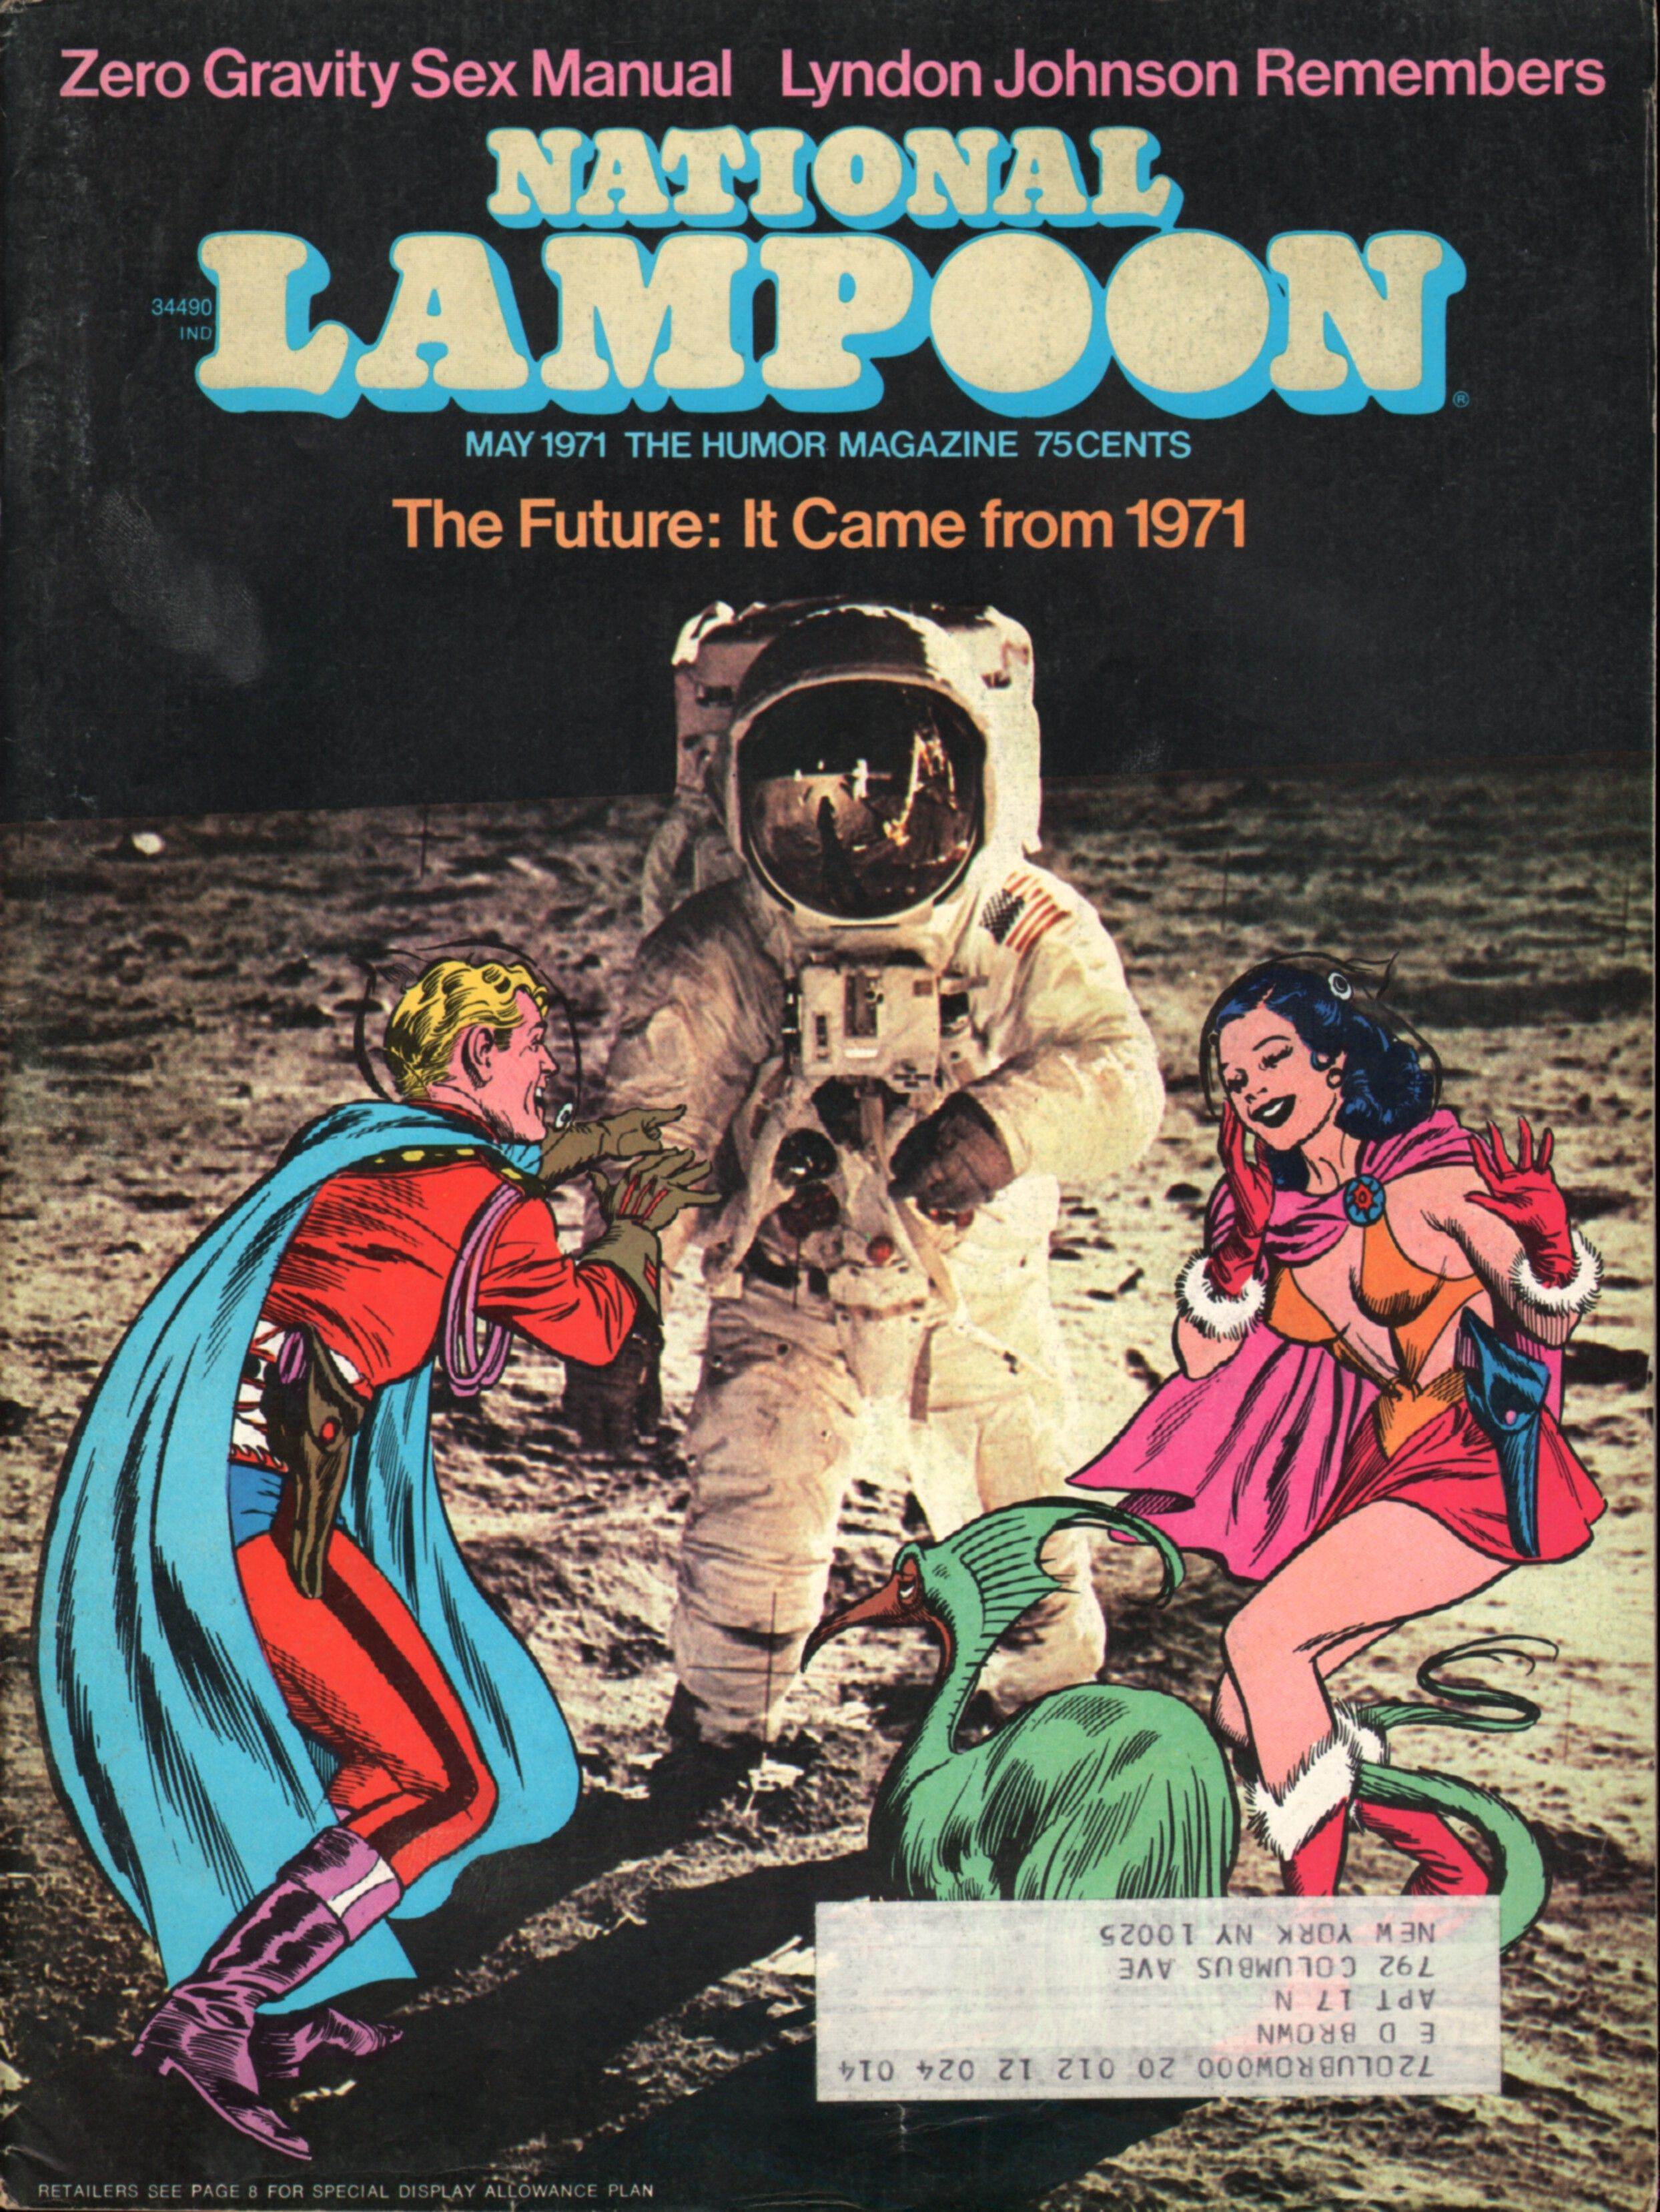 1970s Seventeen Magazine It S That Bohemian Things Again: National Lampoon Was A Ground-breaking American Humor